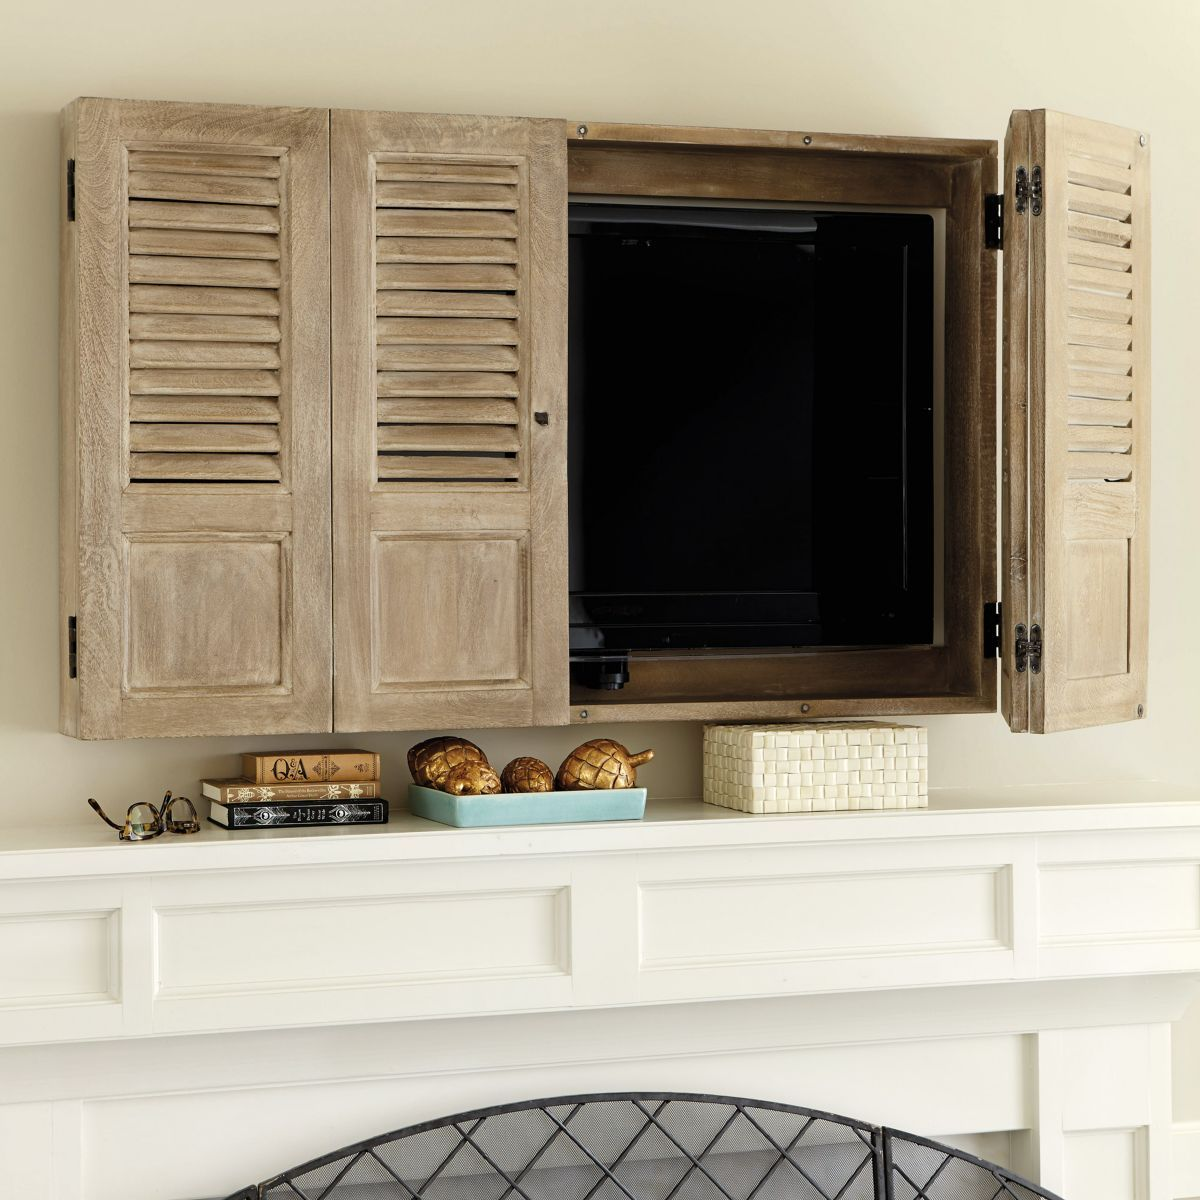 Shutter tv wall cabinet for the home pinterest tv for Wall mounted tv enclosure